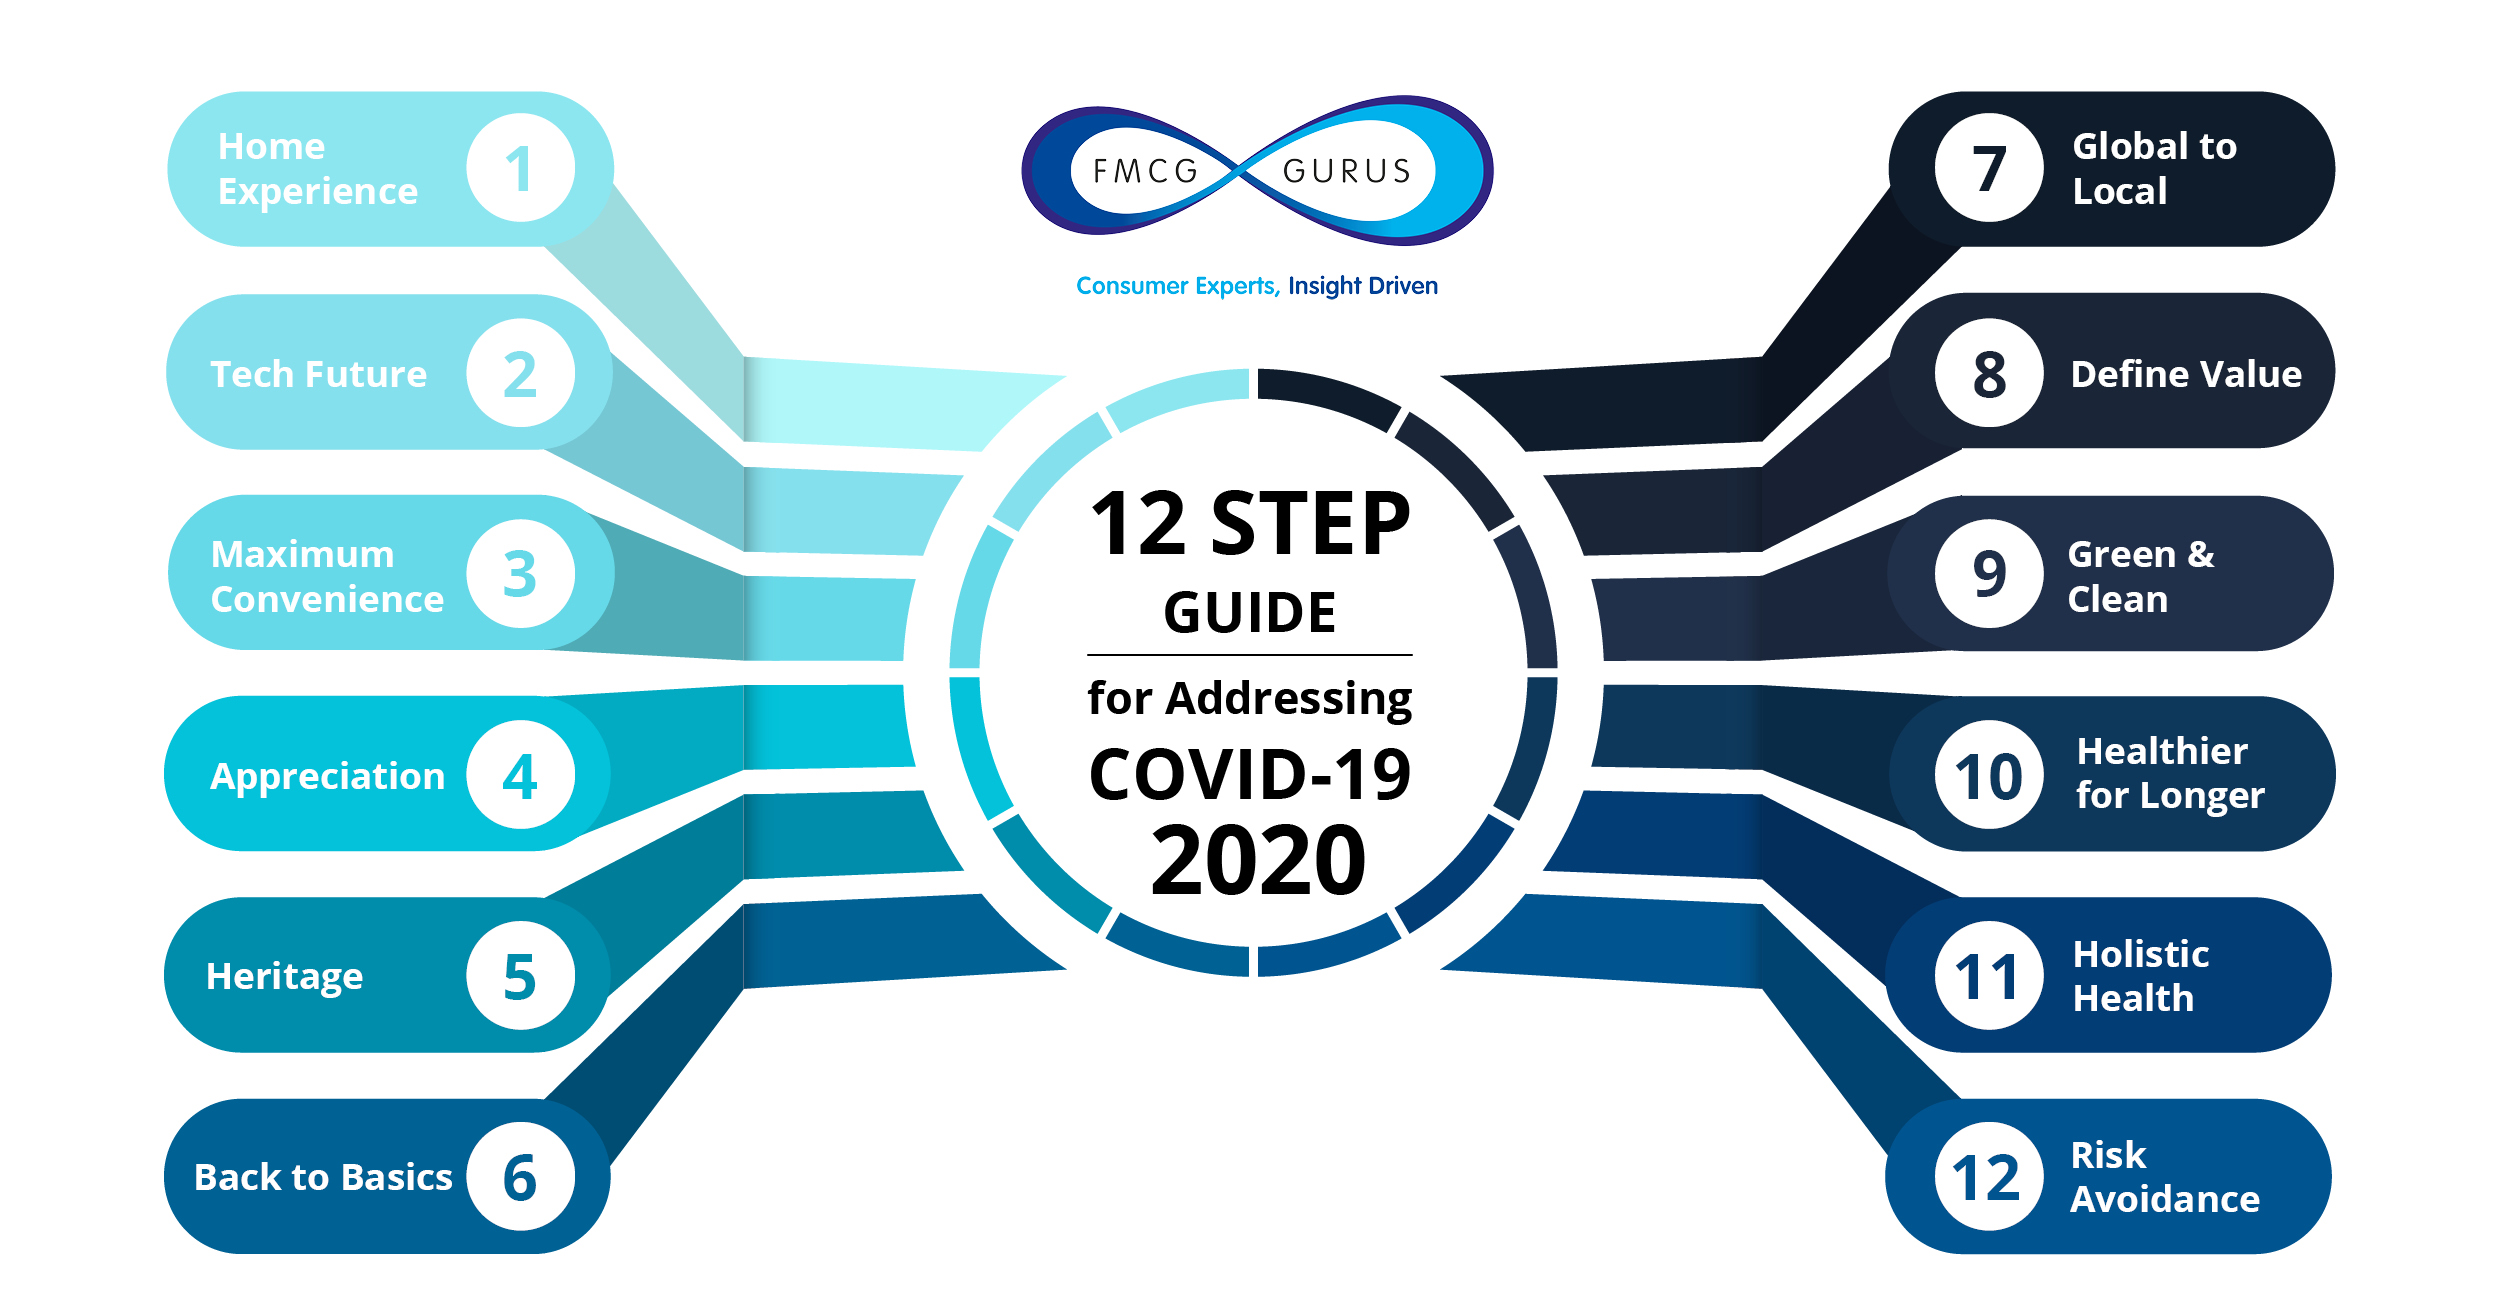 Download FMCG Gurus 12 Step Guide addressing COVID-19.